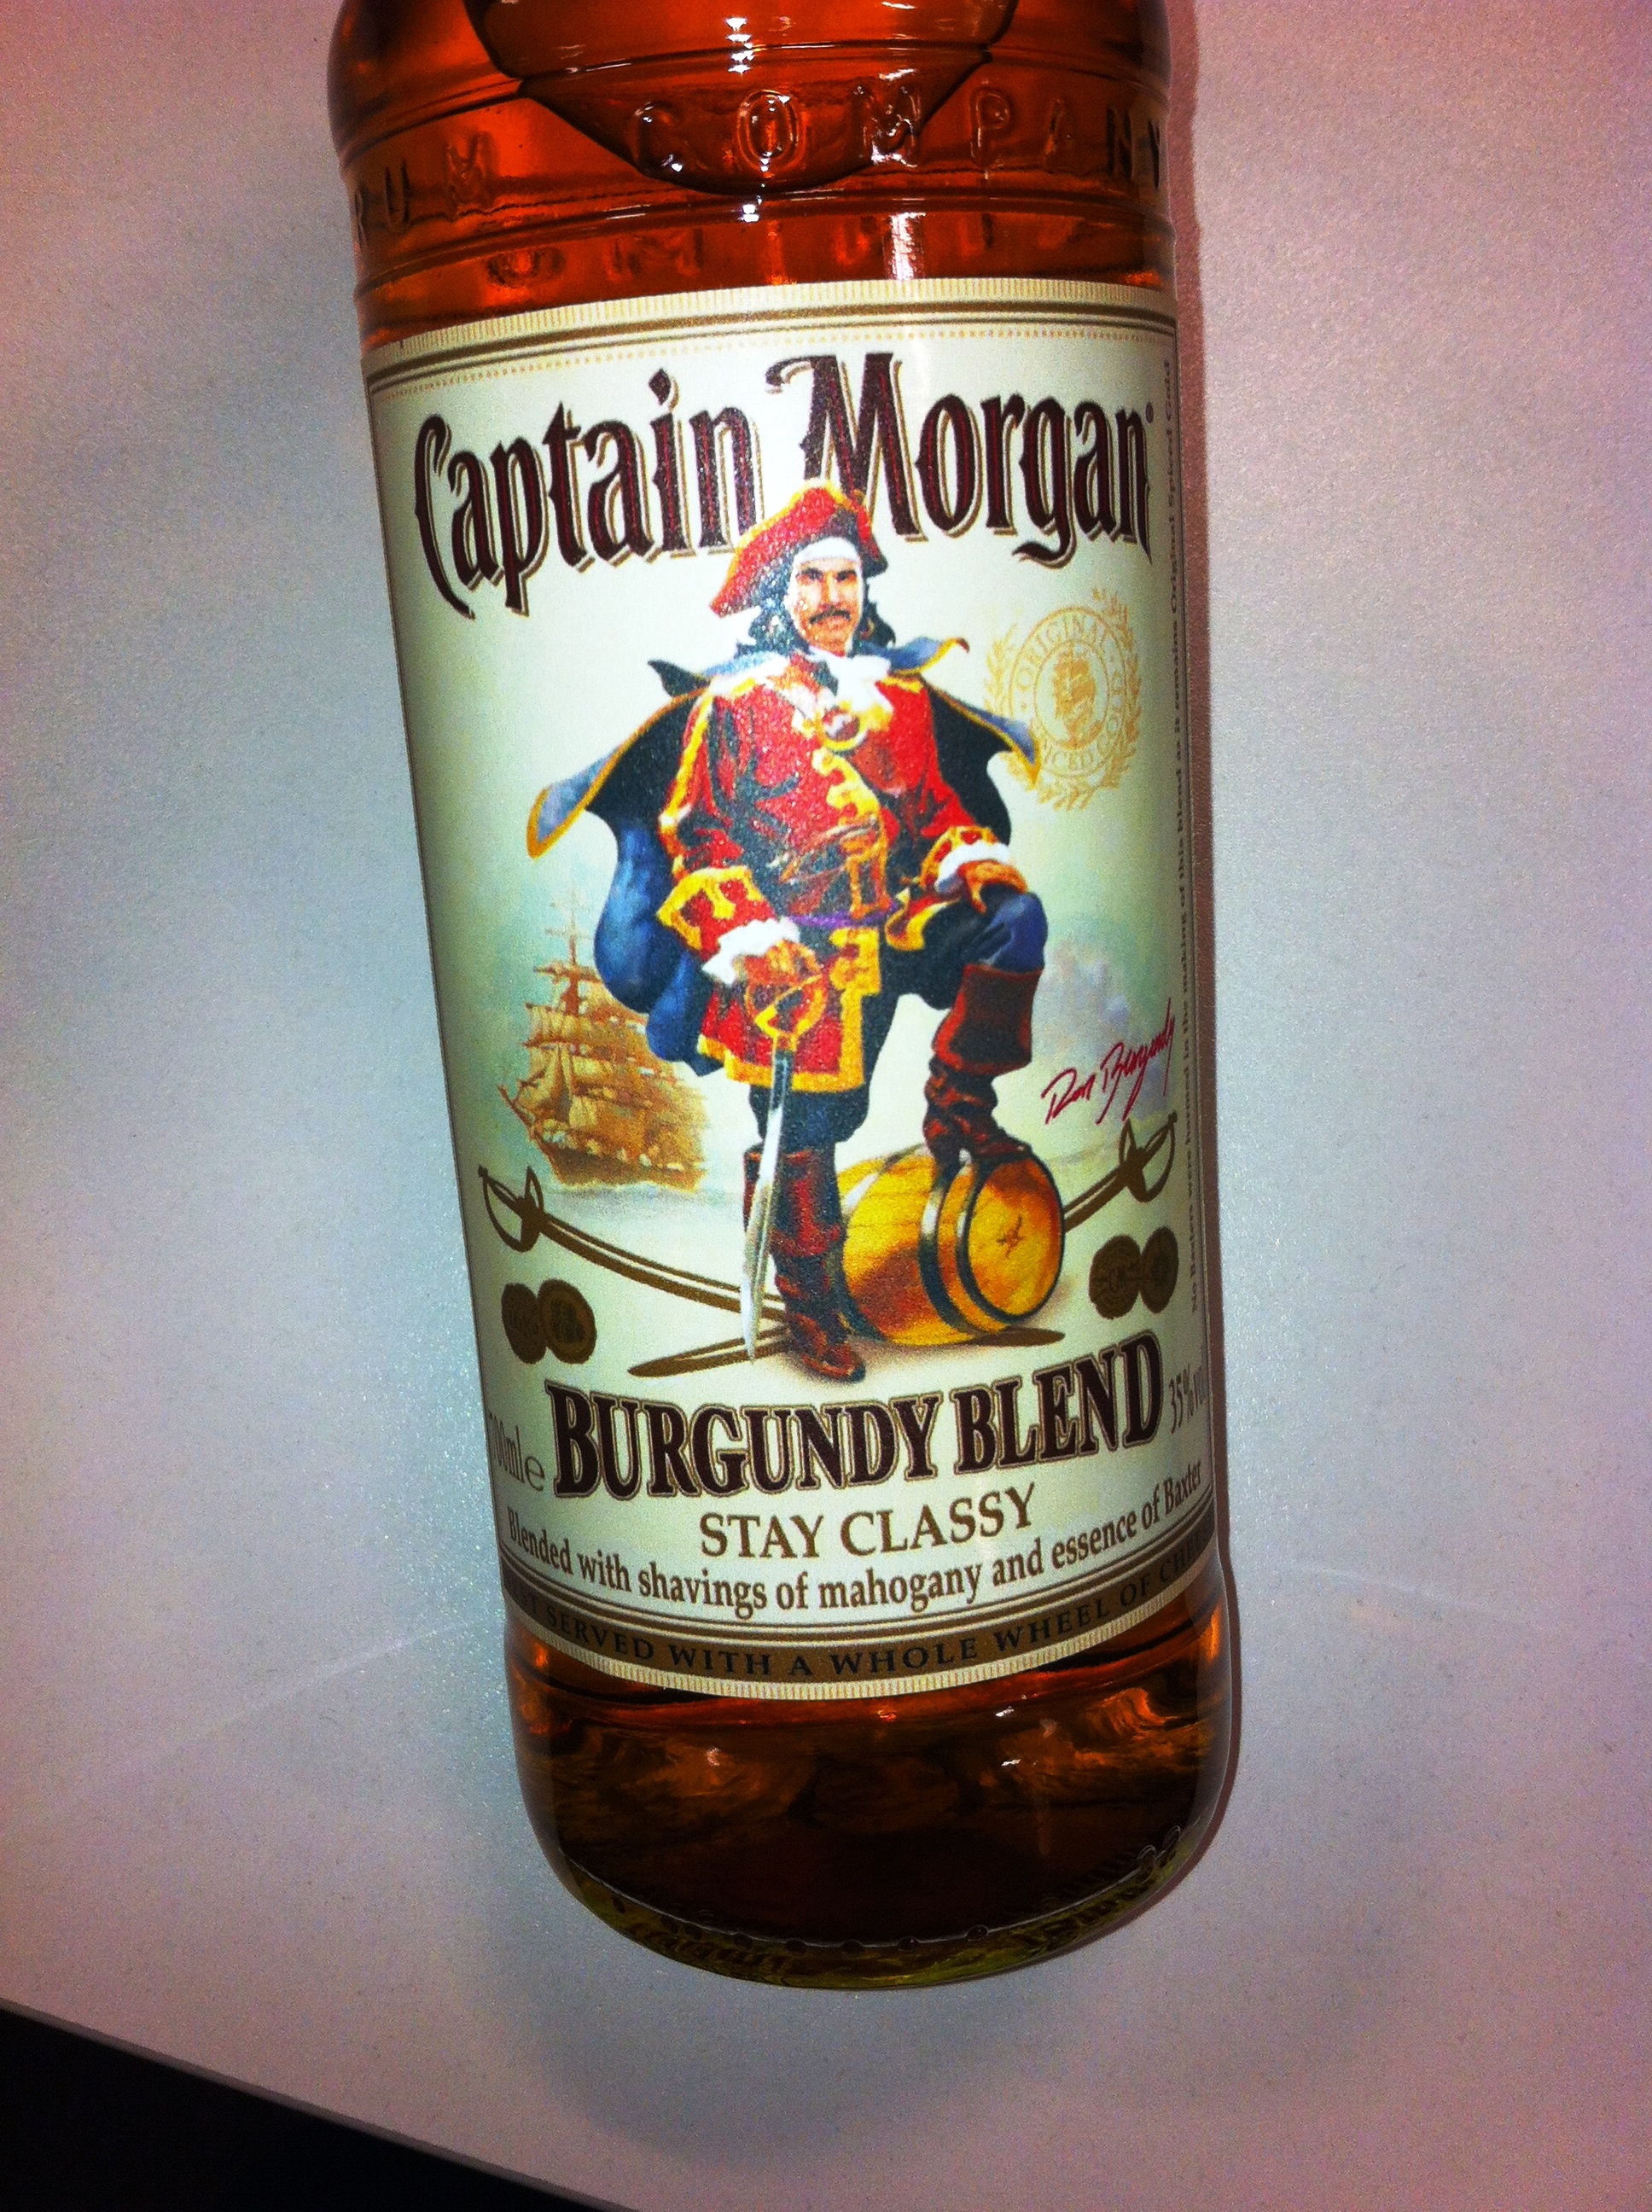 Captain Morgan's Ron Burgundy Blend